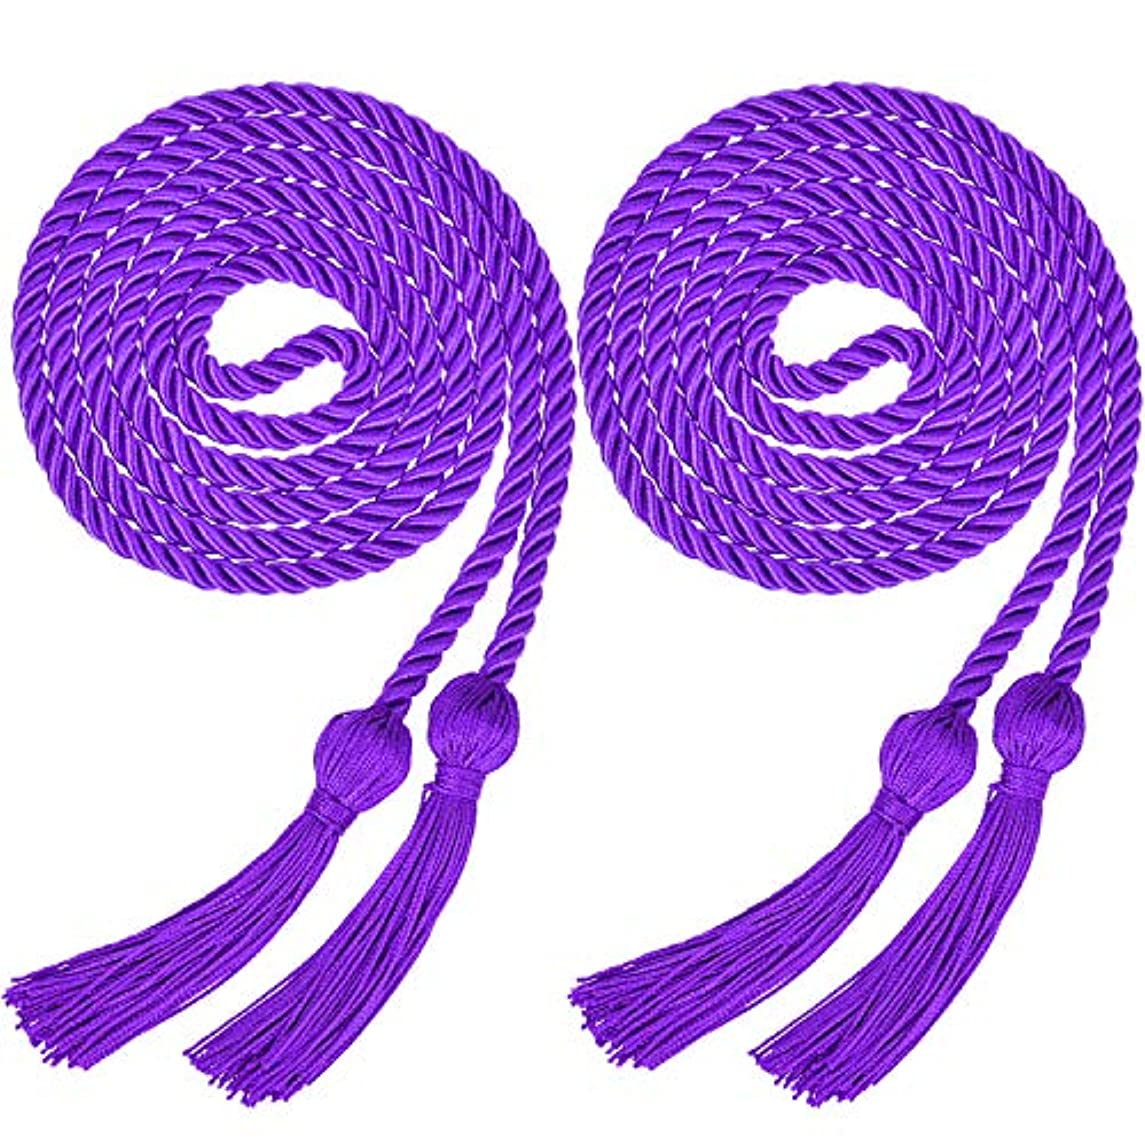 Yaomiao 2 Pieces Graduation Cords Polyester Yarn Honor Cord with Tassel for Graduation Students (Purple)